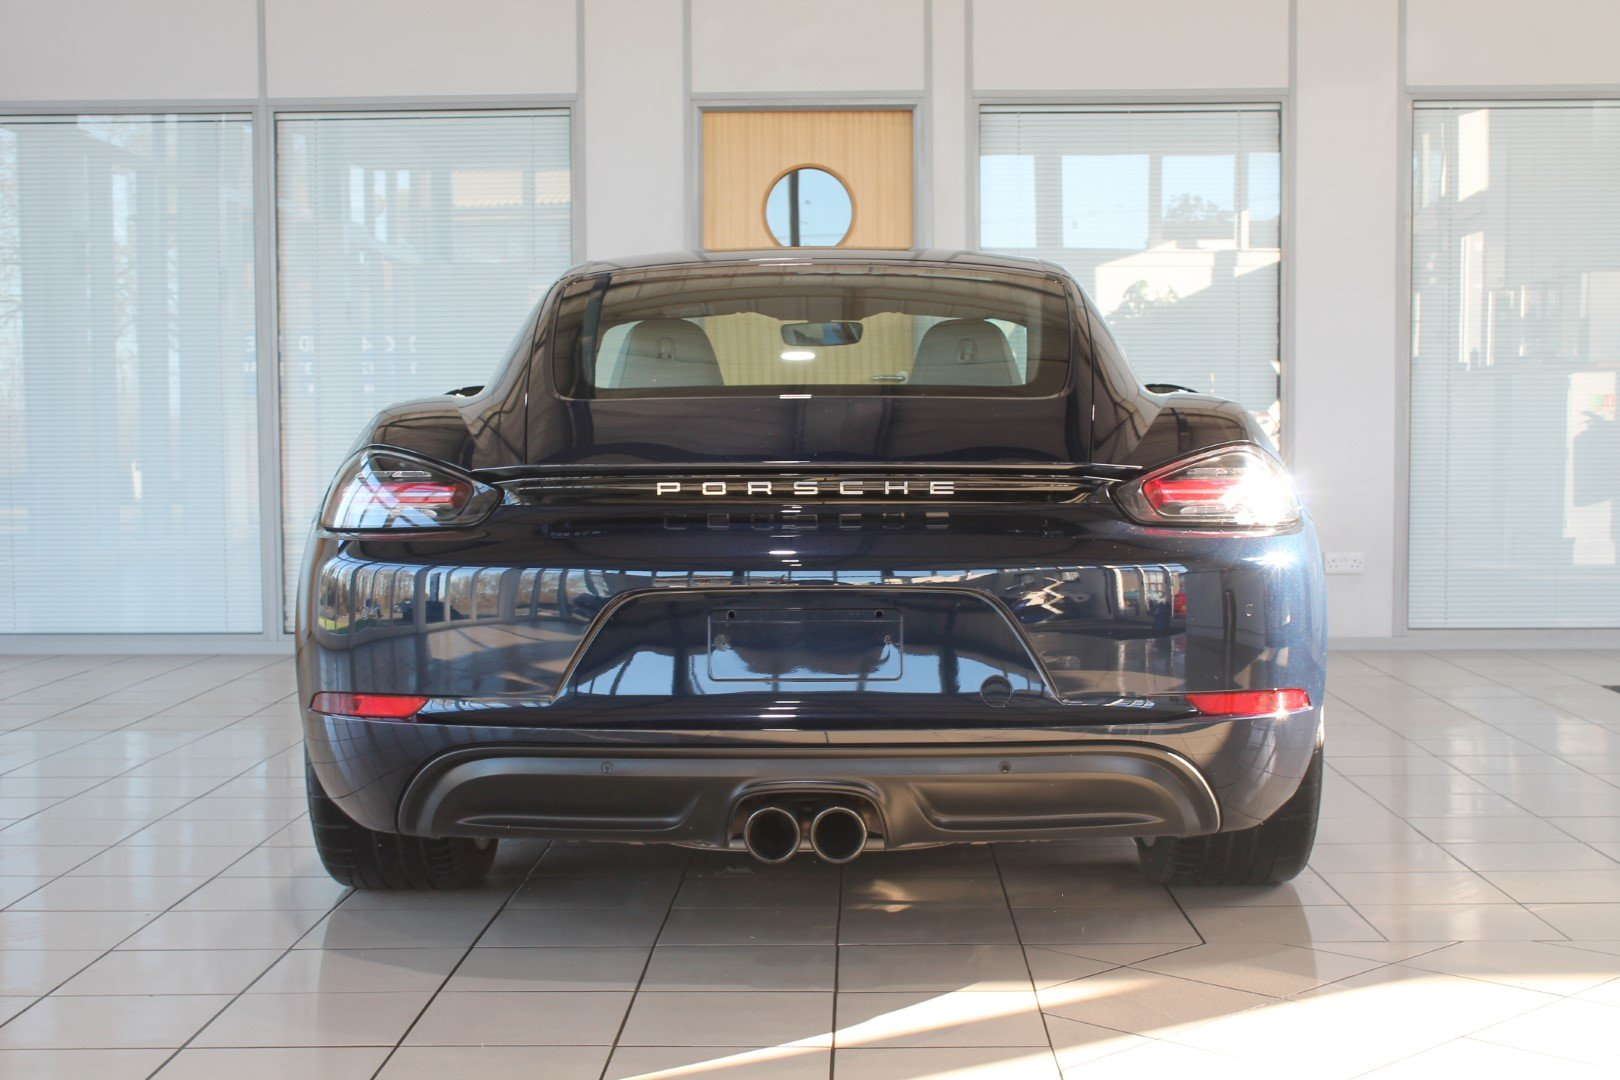 2016 Porsche Cayman (718) 2.5 S PDK - NOW SOLD - MORE REQUIRED For Sale (picture 6 of 12)